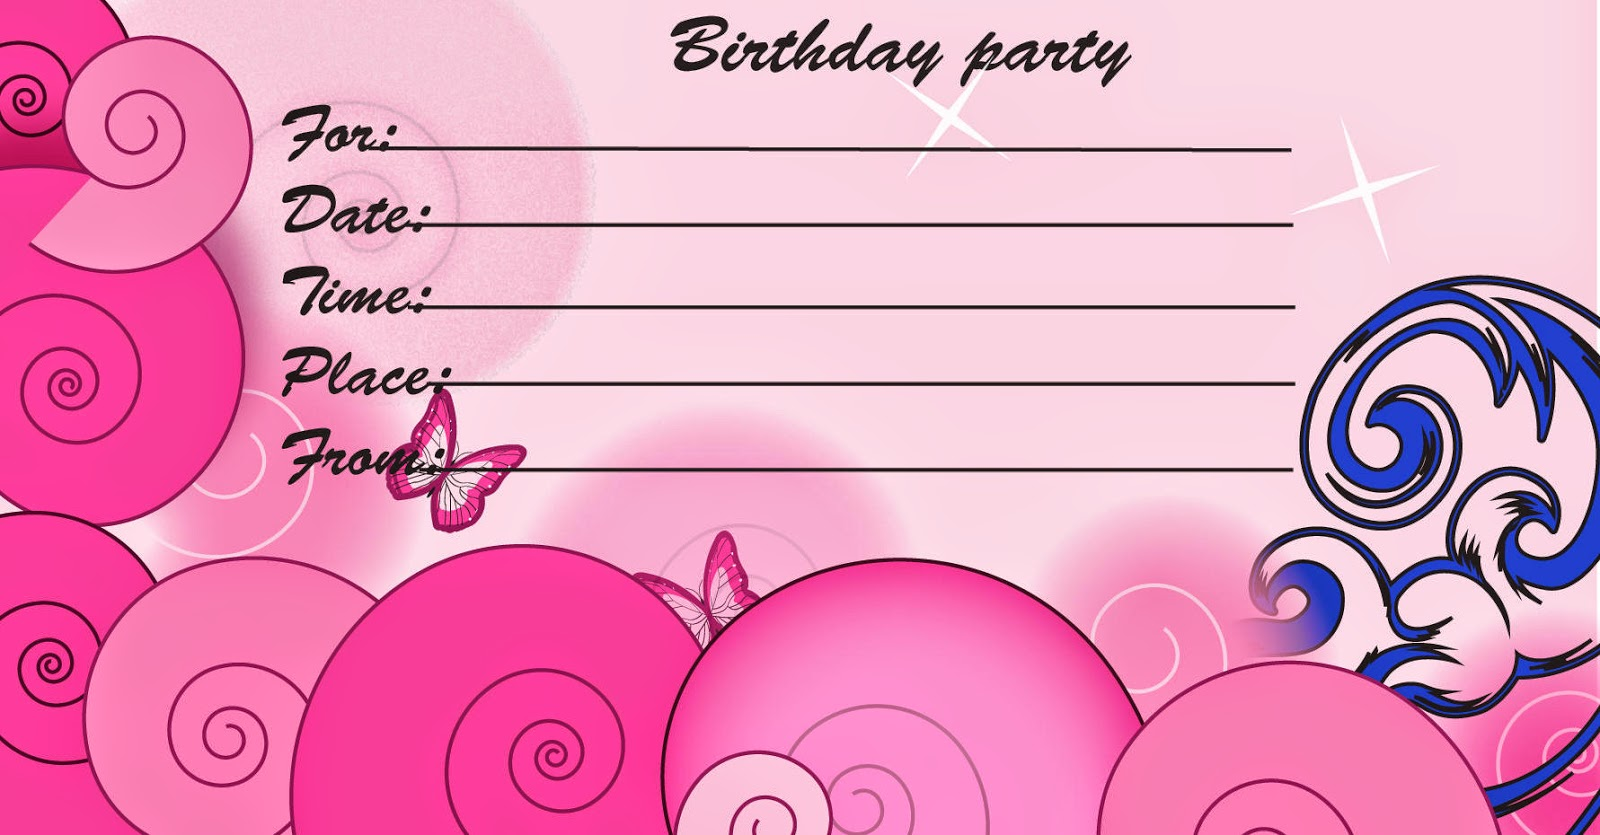 Birthday Invitation Postcards - Birthday party invitation cards to print